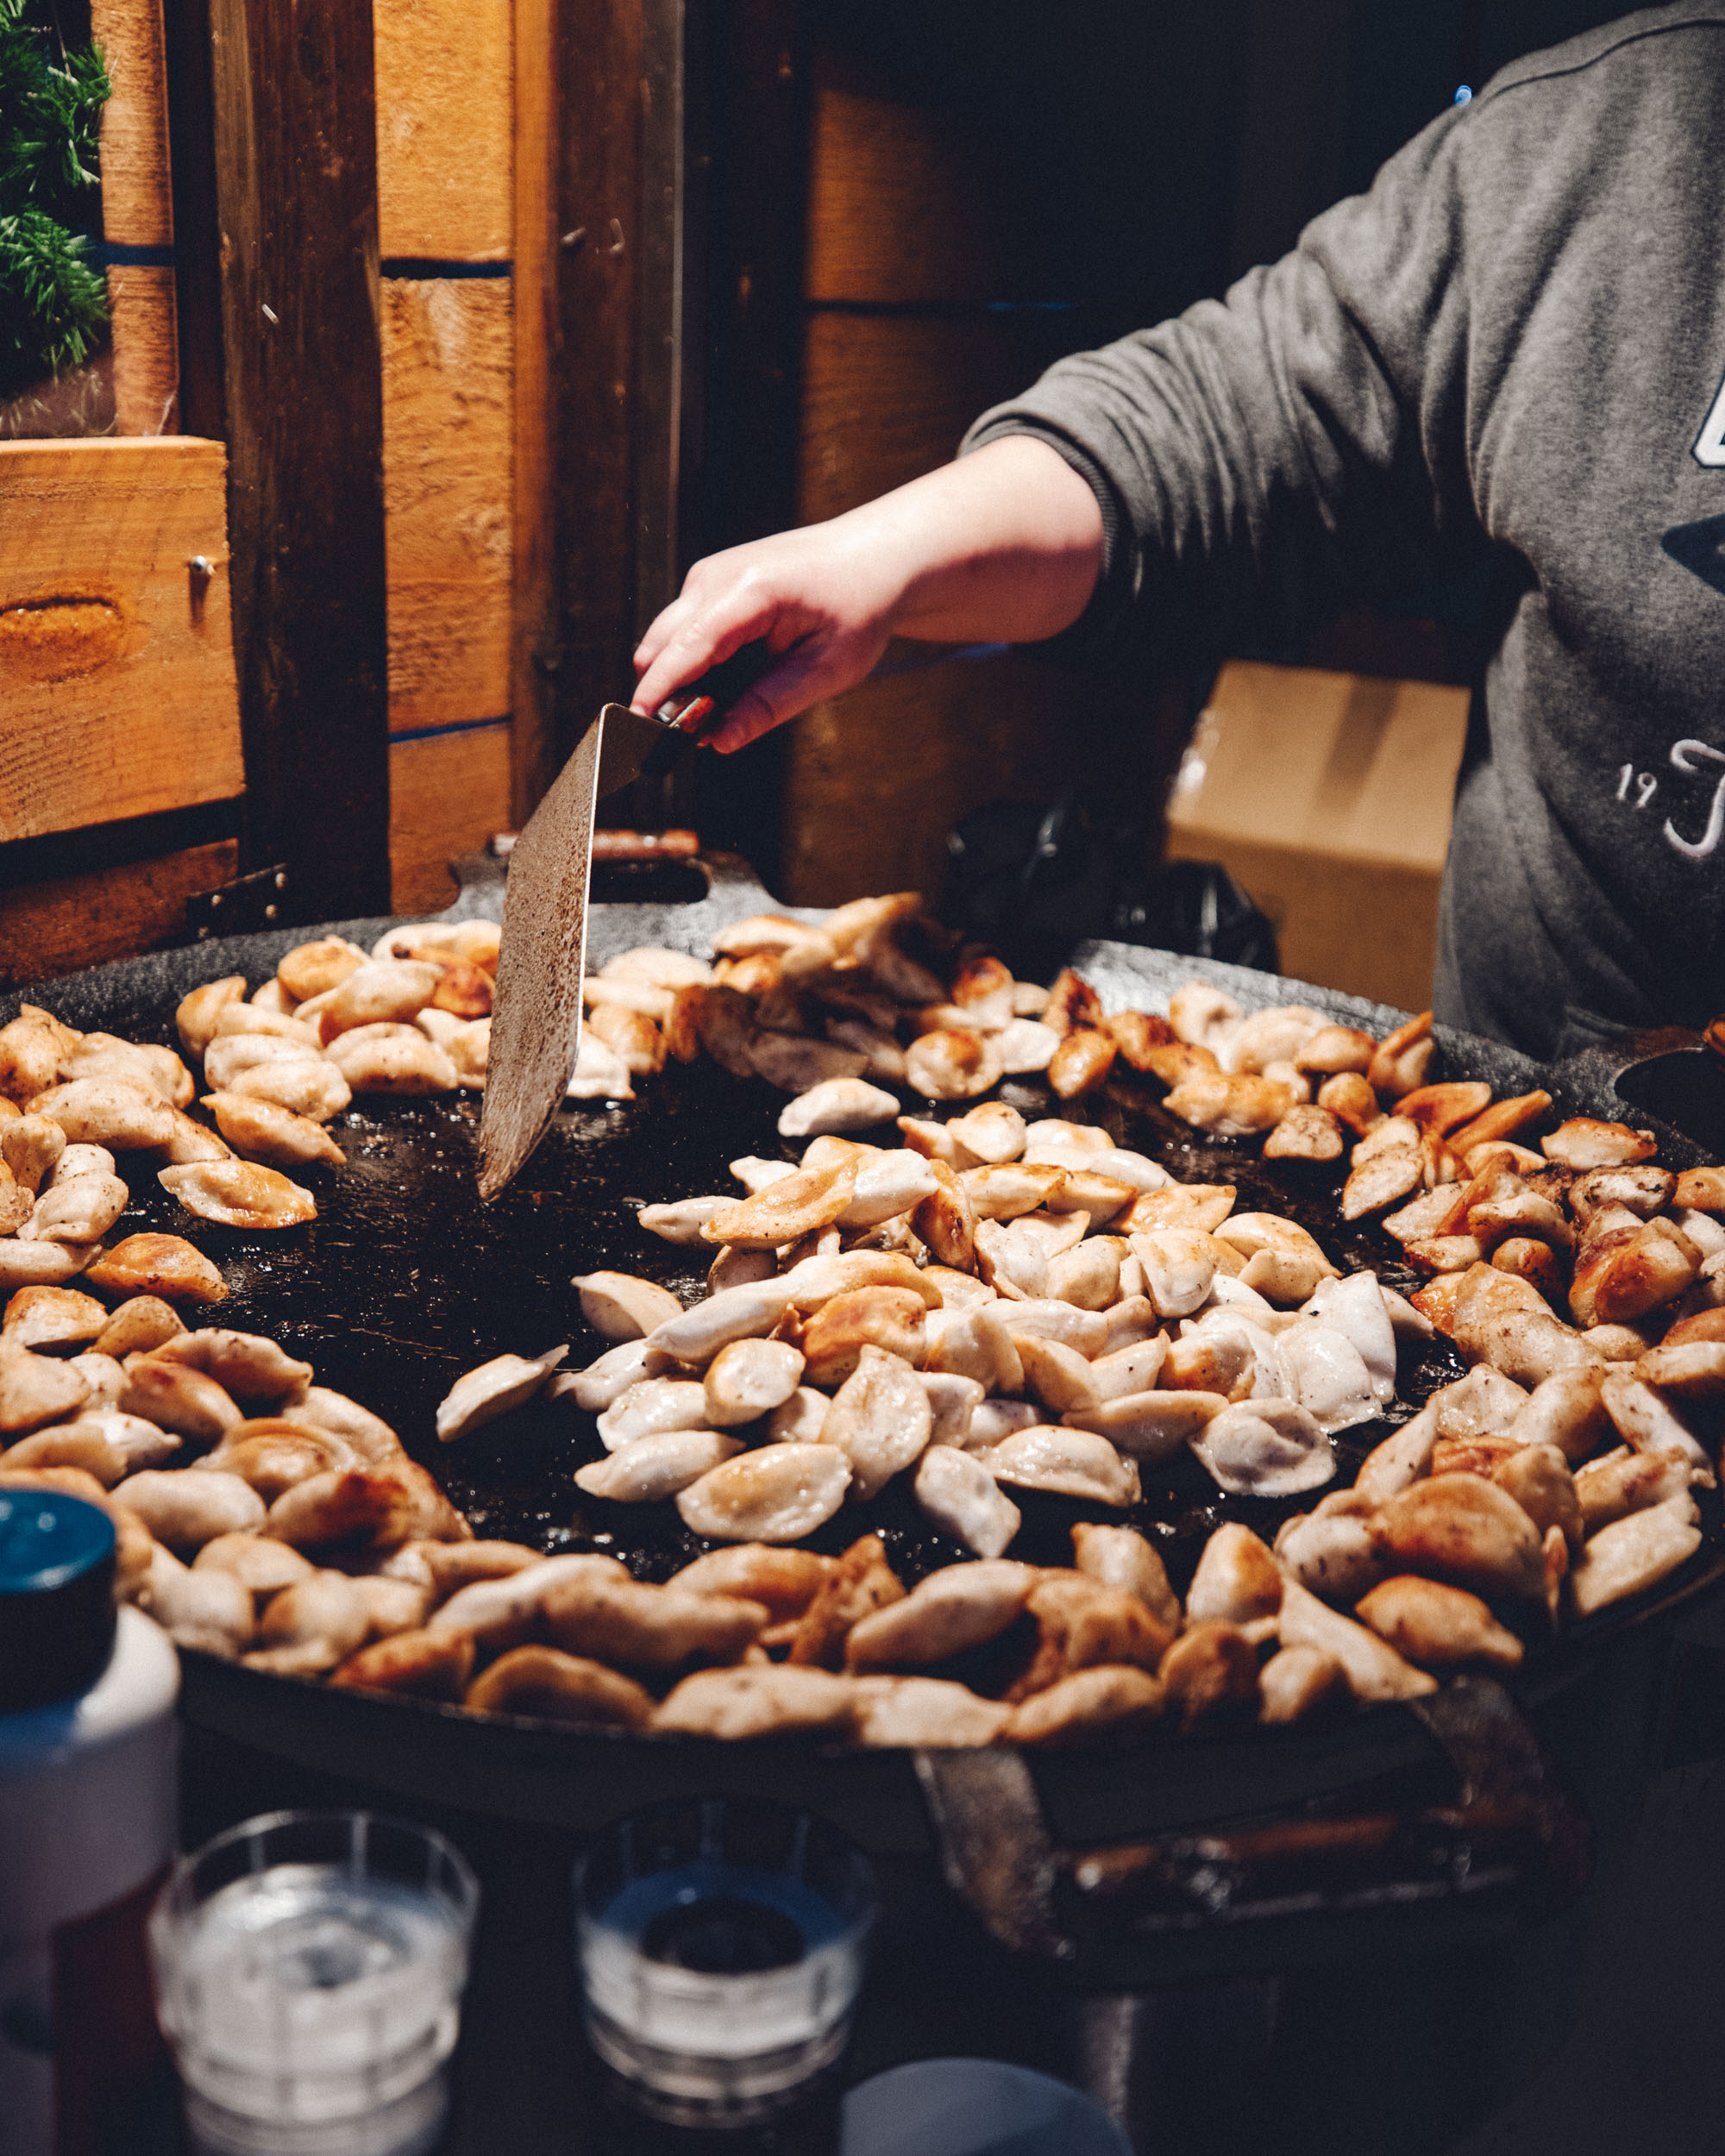 Dumplings at Tallinn Estonia during Christmas Markets in Winter via @finduslost